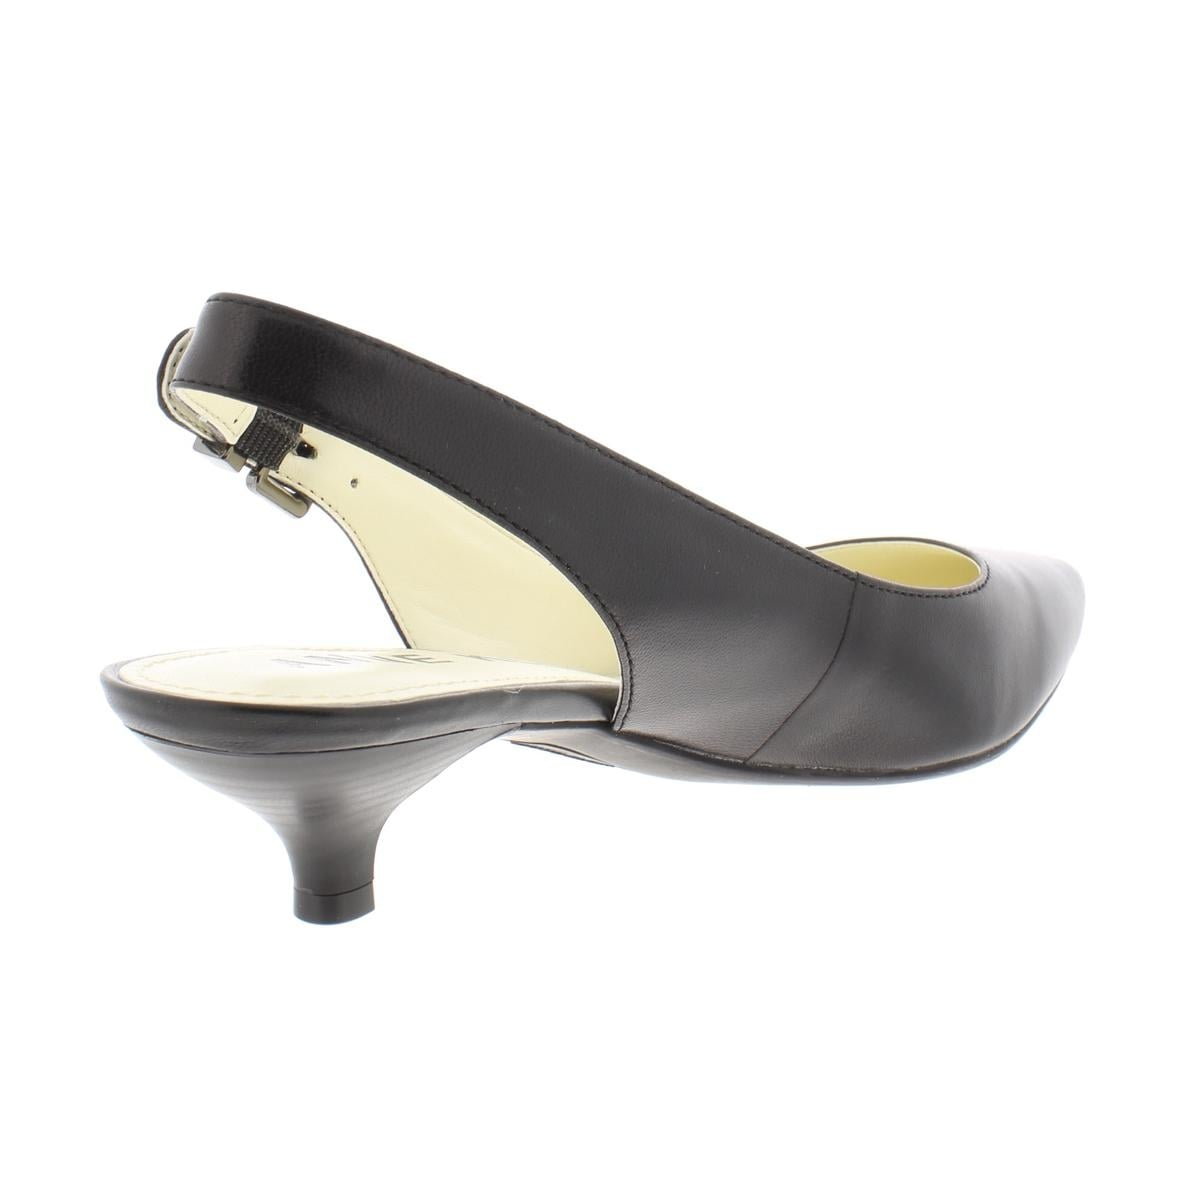 0789c4dc94f Shop Anne Klein Womens Expert Kitten Heels Pointed Toe - Free Shipping  Today - Overstock - 21027813